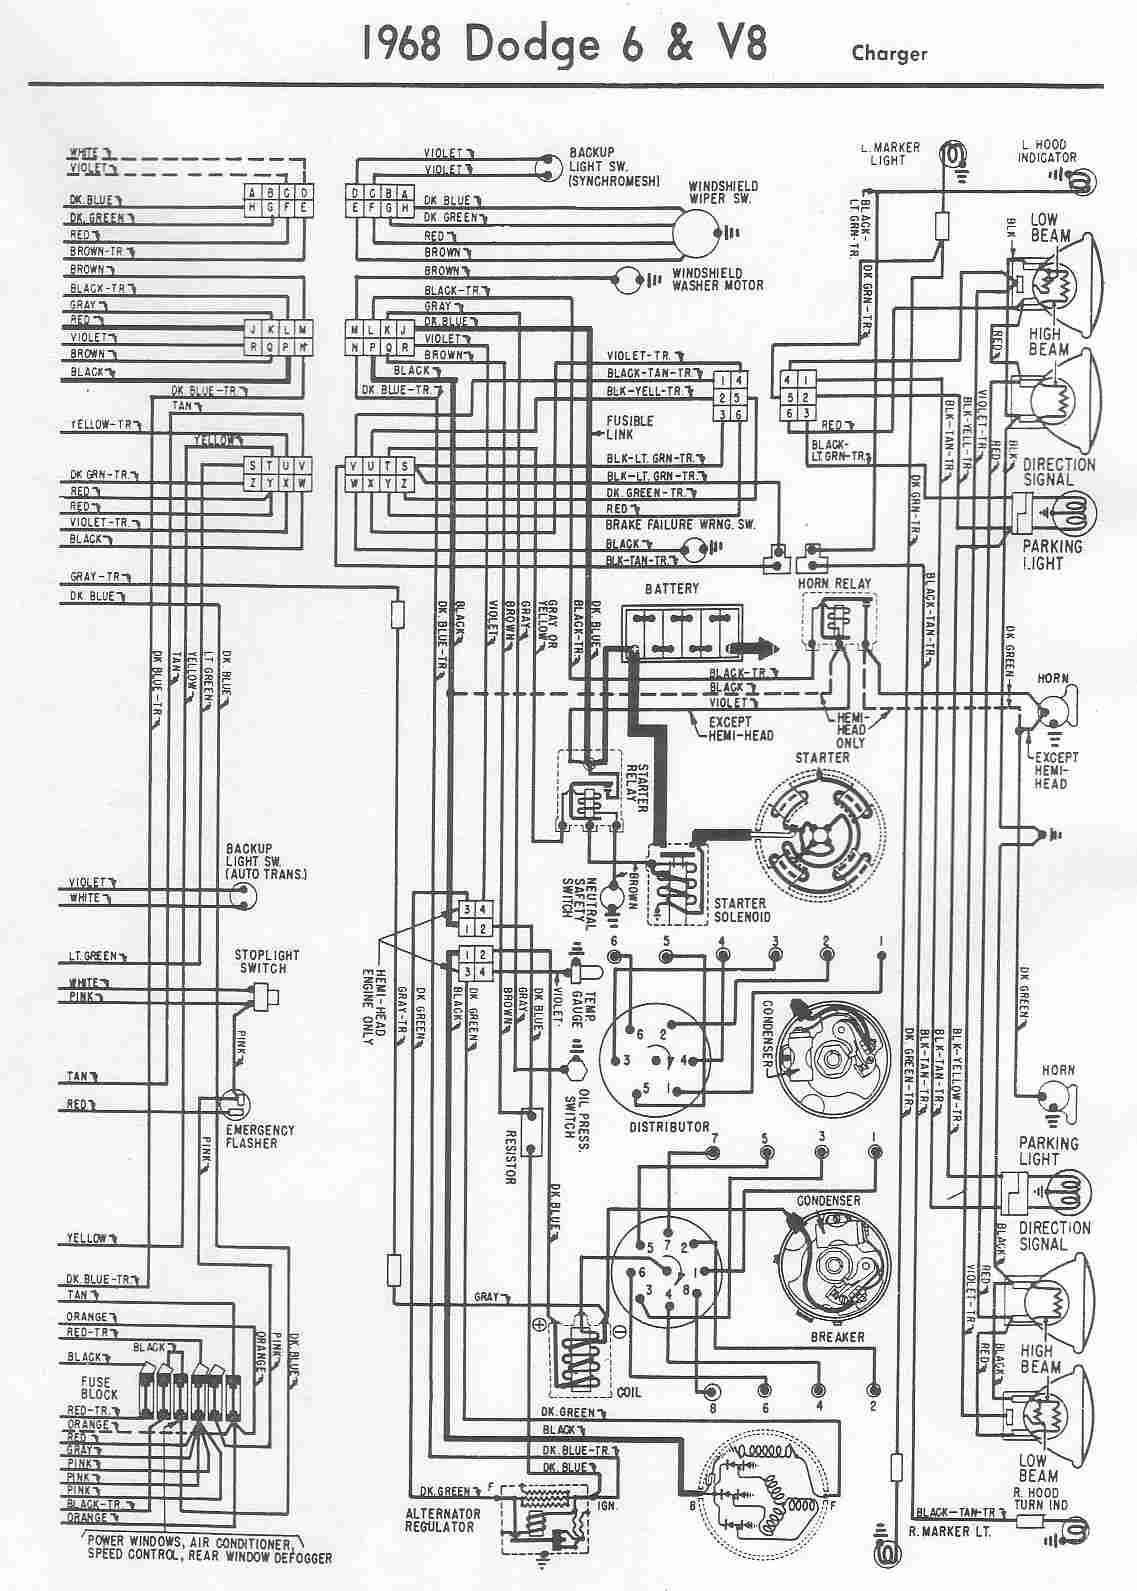 1965 Plymouth Fury Wiring Diagram Electrical Schematics 1966 Grand Prix Free Download Belvedere Trusted Diagrams 1962 Sport